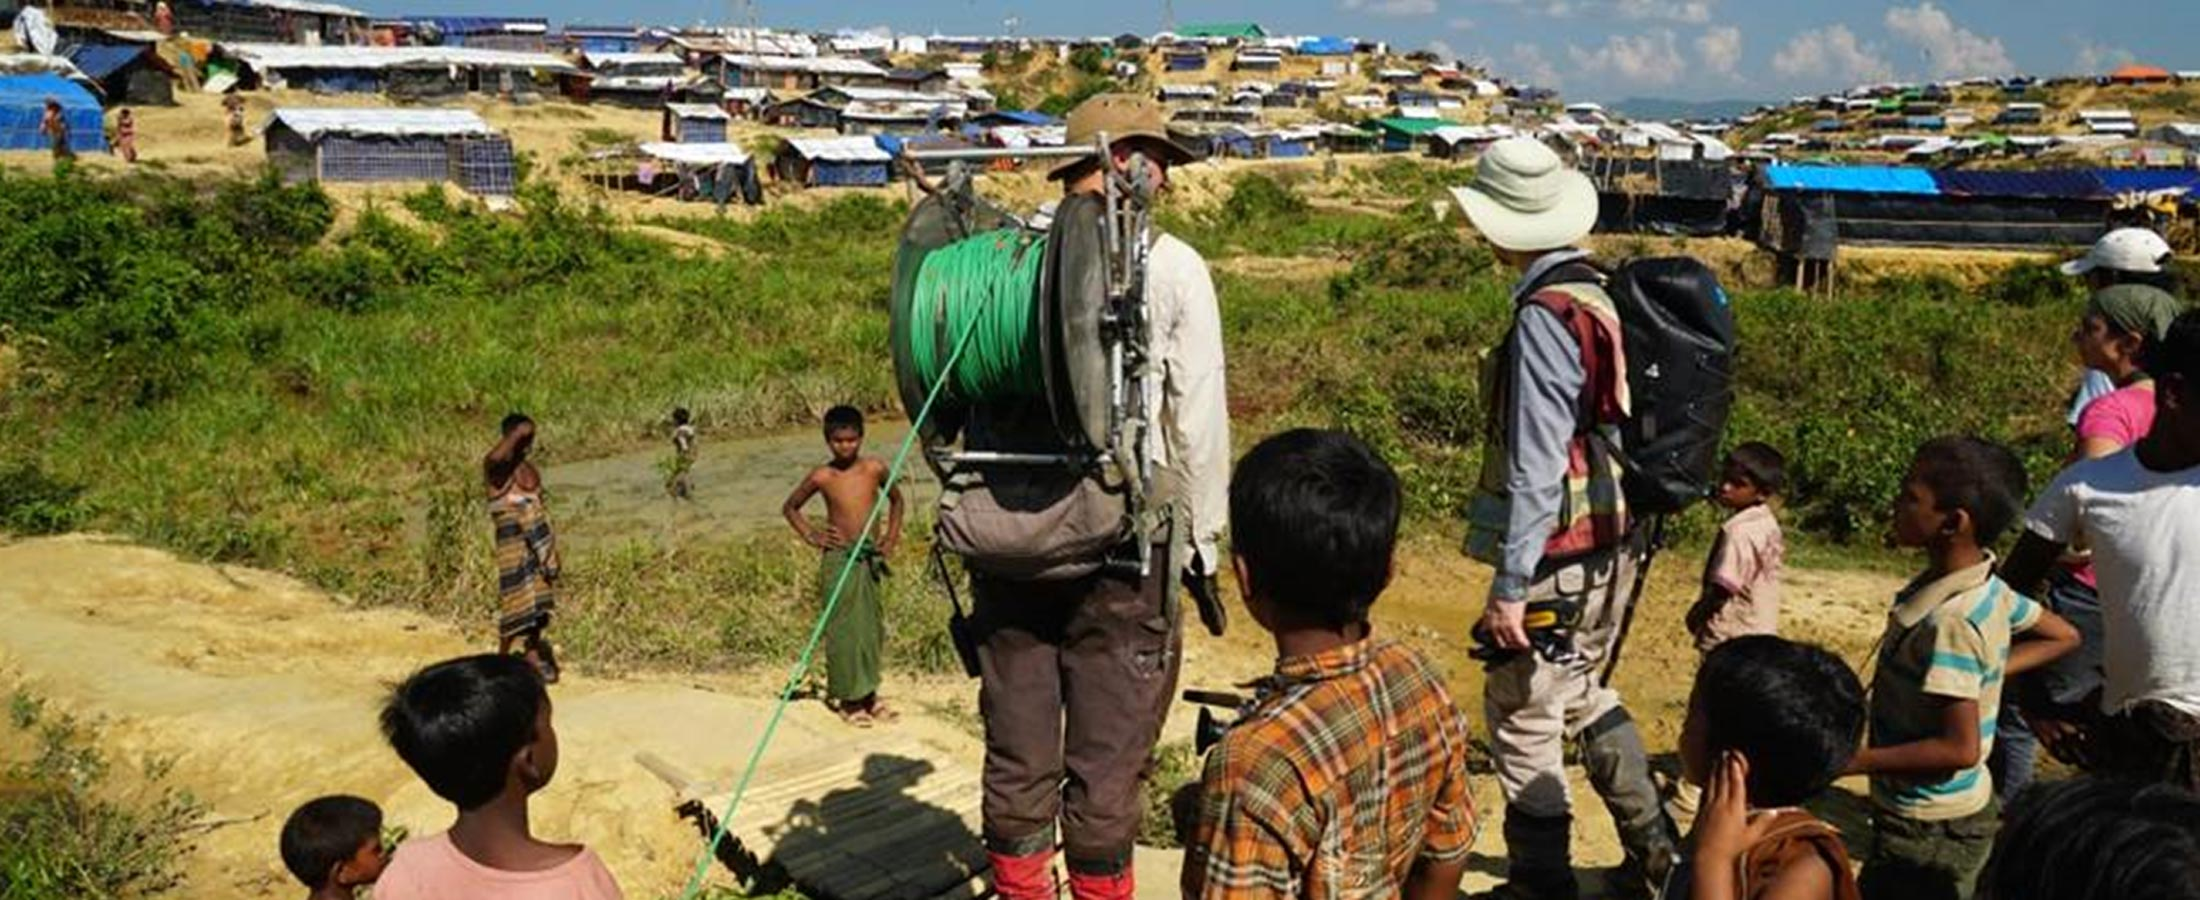 Abstract: Emergency Response Groundwater Exploration at Rohingya Refugee Camps in Bangladesh